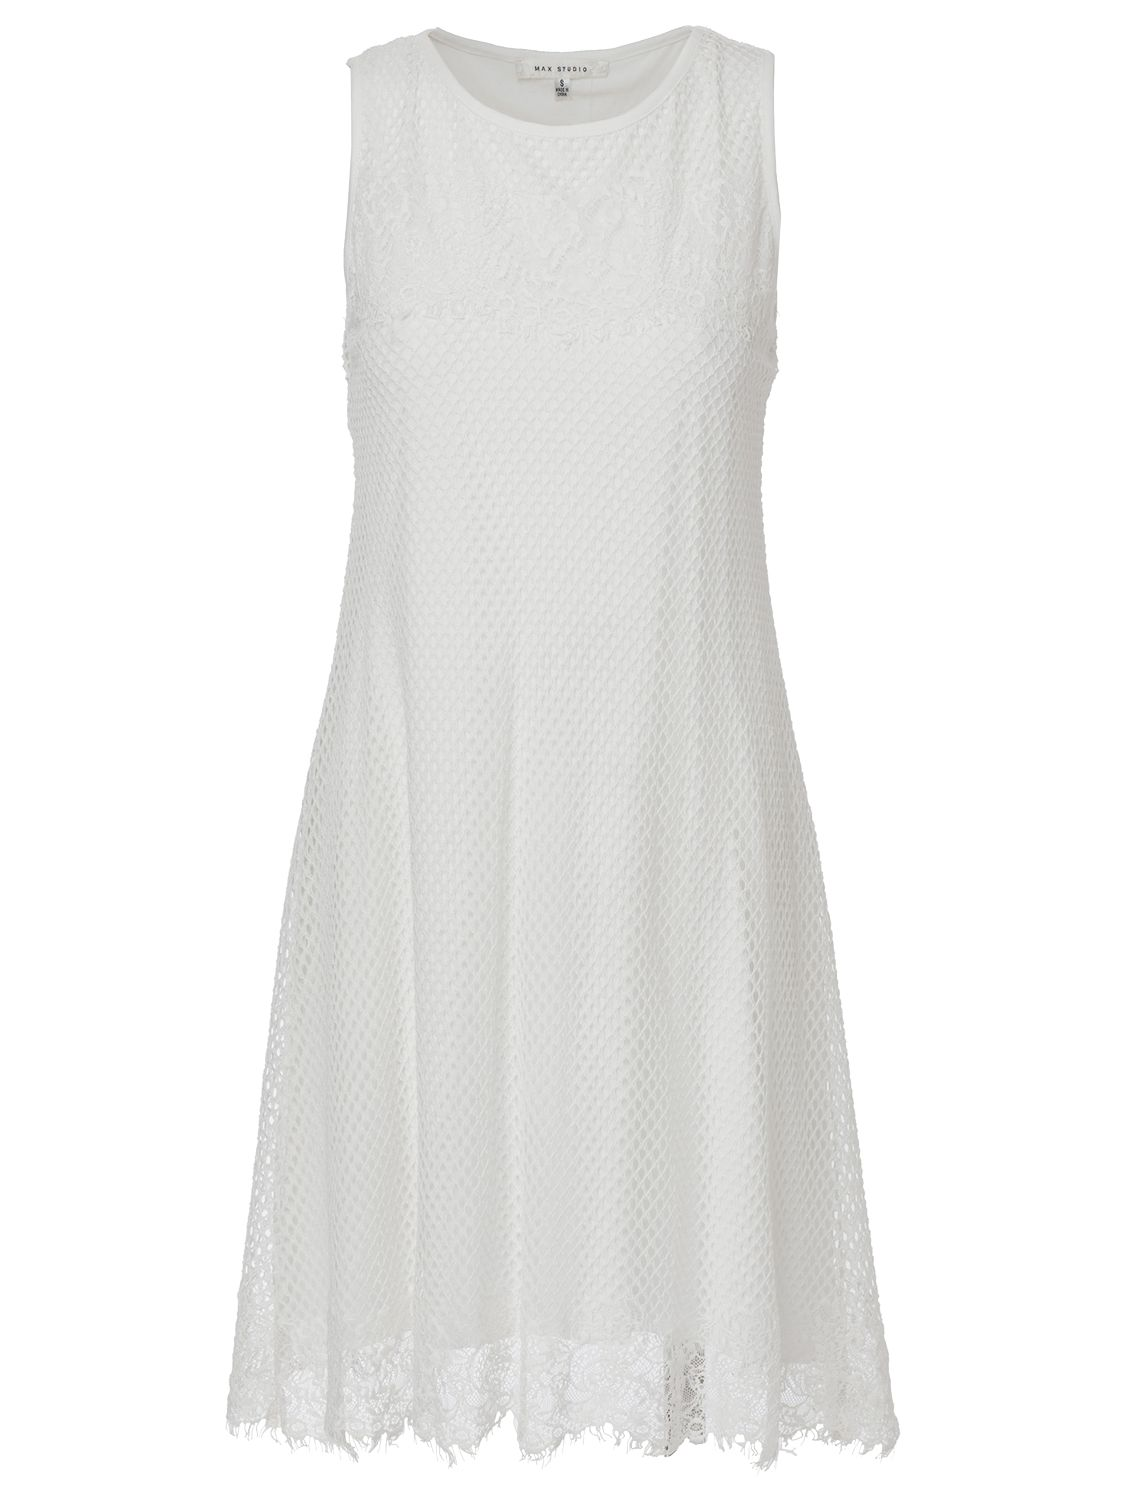 max stripe sleeveless lace dress navy, max, stripe, sleeveless, lace, dress, navy, max studio, peach blossom|peach blossom|peach blossom|navy|off white|navy|navy|off white|peach blossom|off white|off white|navy, xs|m|s|l|xs|s|m|l|l|s|m|xs, women, womens dresses, new in clothing, 1915484